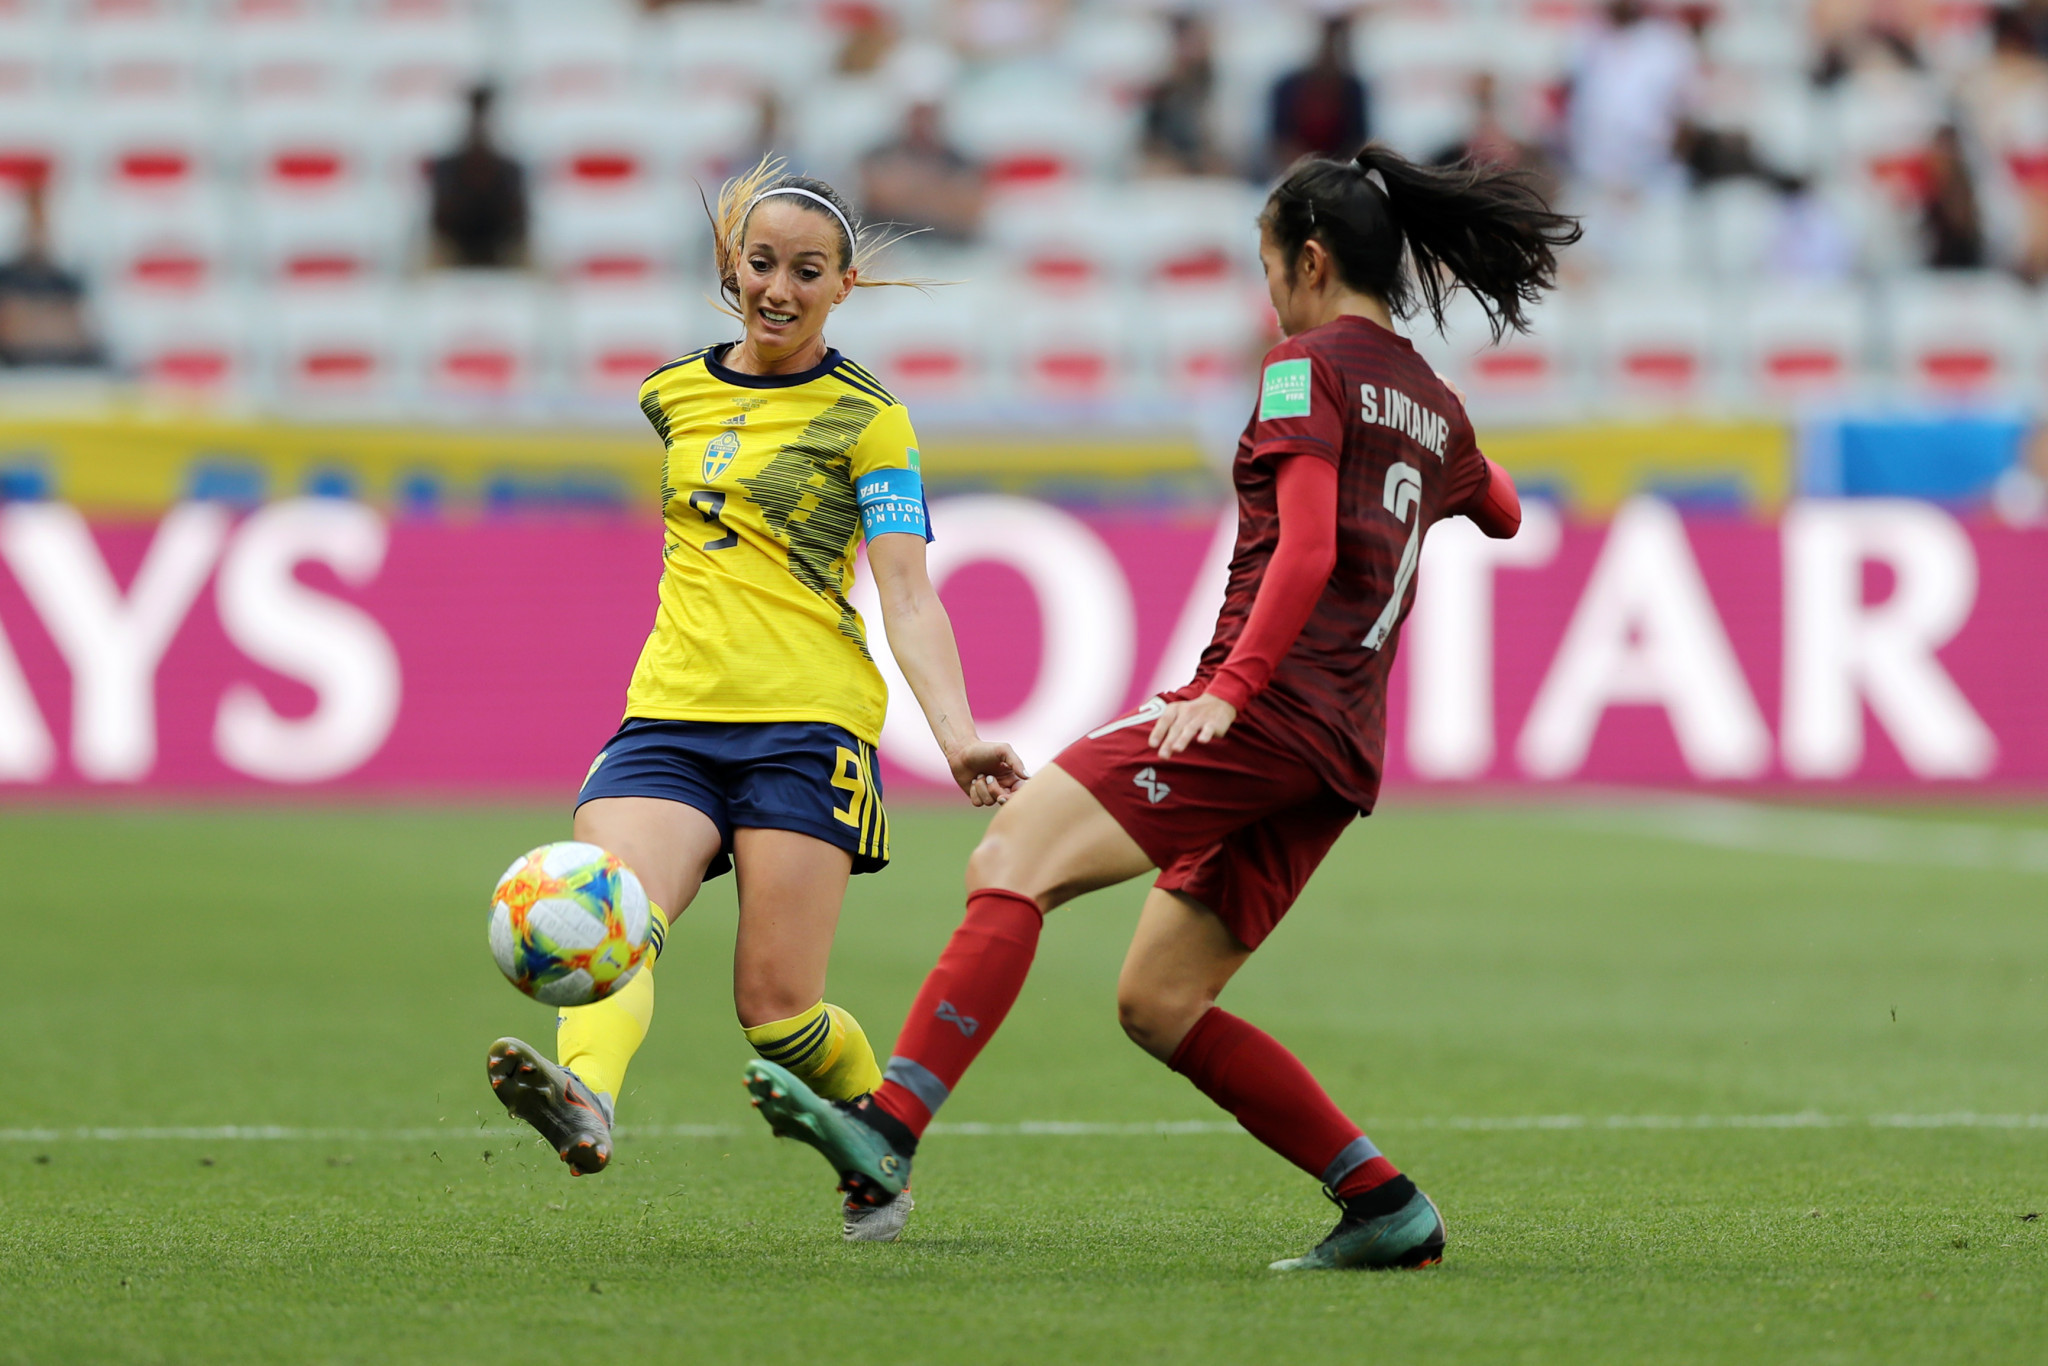 Kosovare Asllani doubled the lead at Allianz Riviera in Nice ©Getty Images